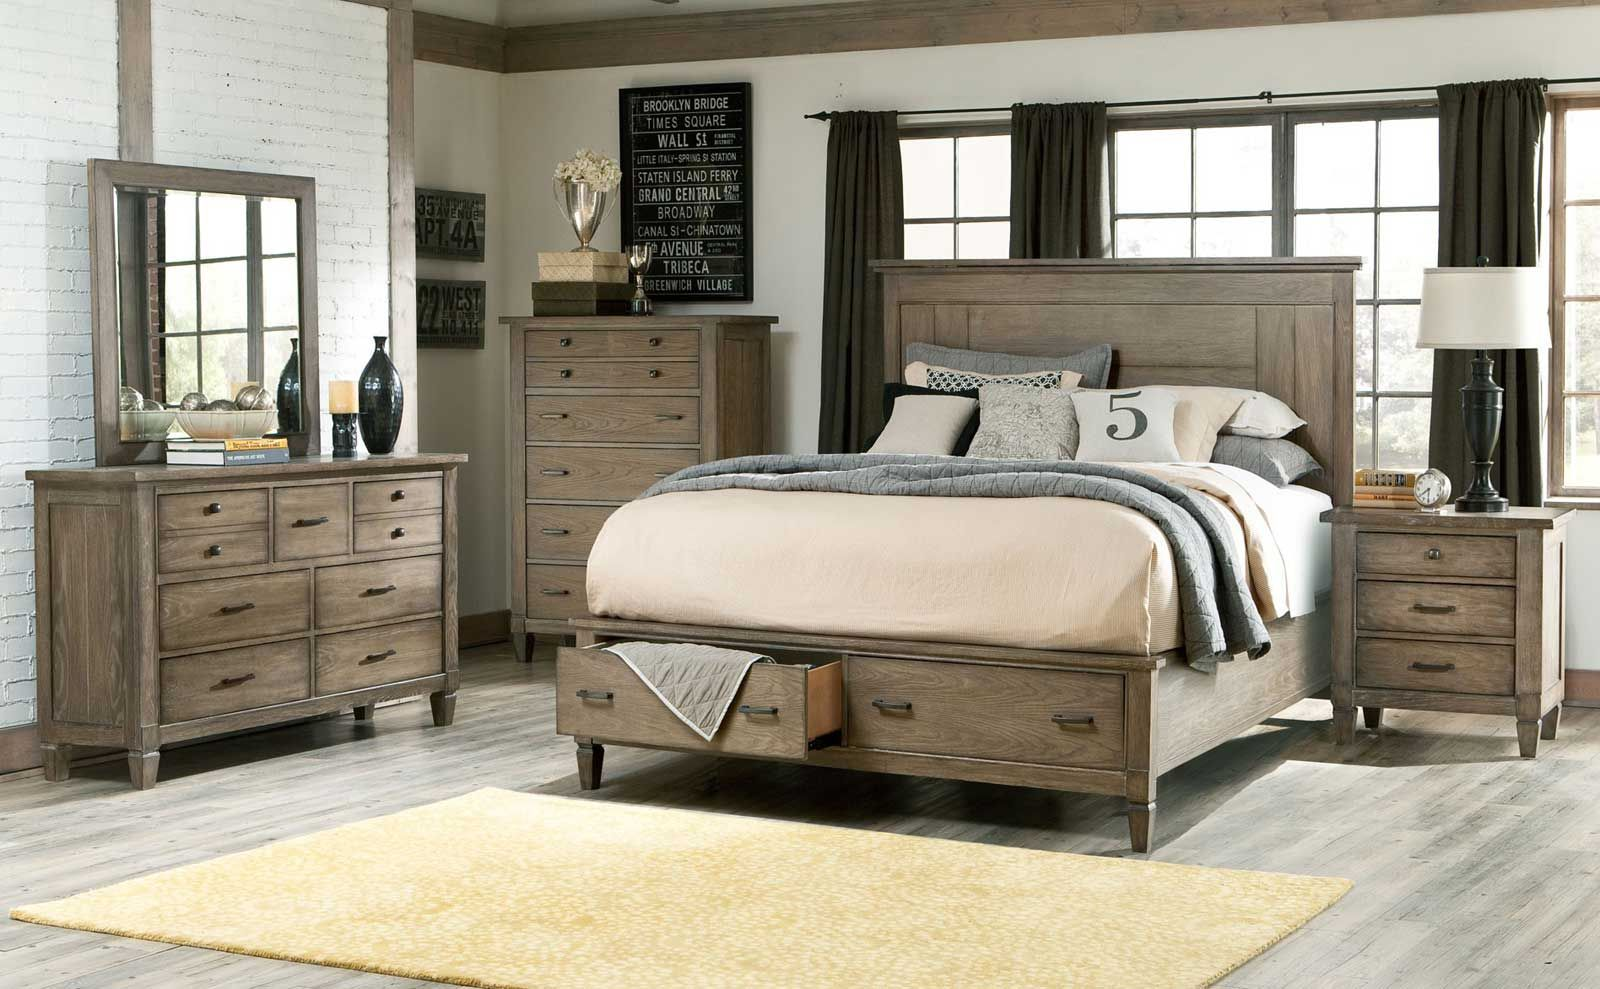 Rustic King Size Bedroom Sets on rustic living room sets, pedestal bedroom sets, rustic bedroom furniture, rustic pine king bedroom set, log bedroom sets, master bedroom furniture sets, rustic western cross comforter set, rustic texas bedroom sets king, rustic bathroom sets, modern bedroom furniture sets, big post bedroom sets, rustic king size comforters, california king bedroom sets, big lots bedroom sets, western bedroom sets, rustic master bedroom, rustic king bed, star furniture bedroom sets, prices on ashley bedroom sets, cheap bedroom sets,